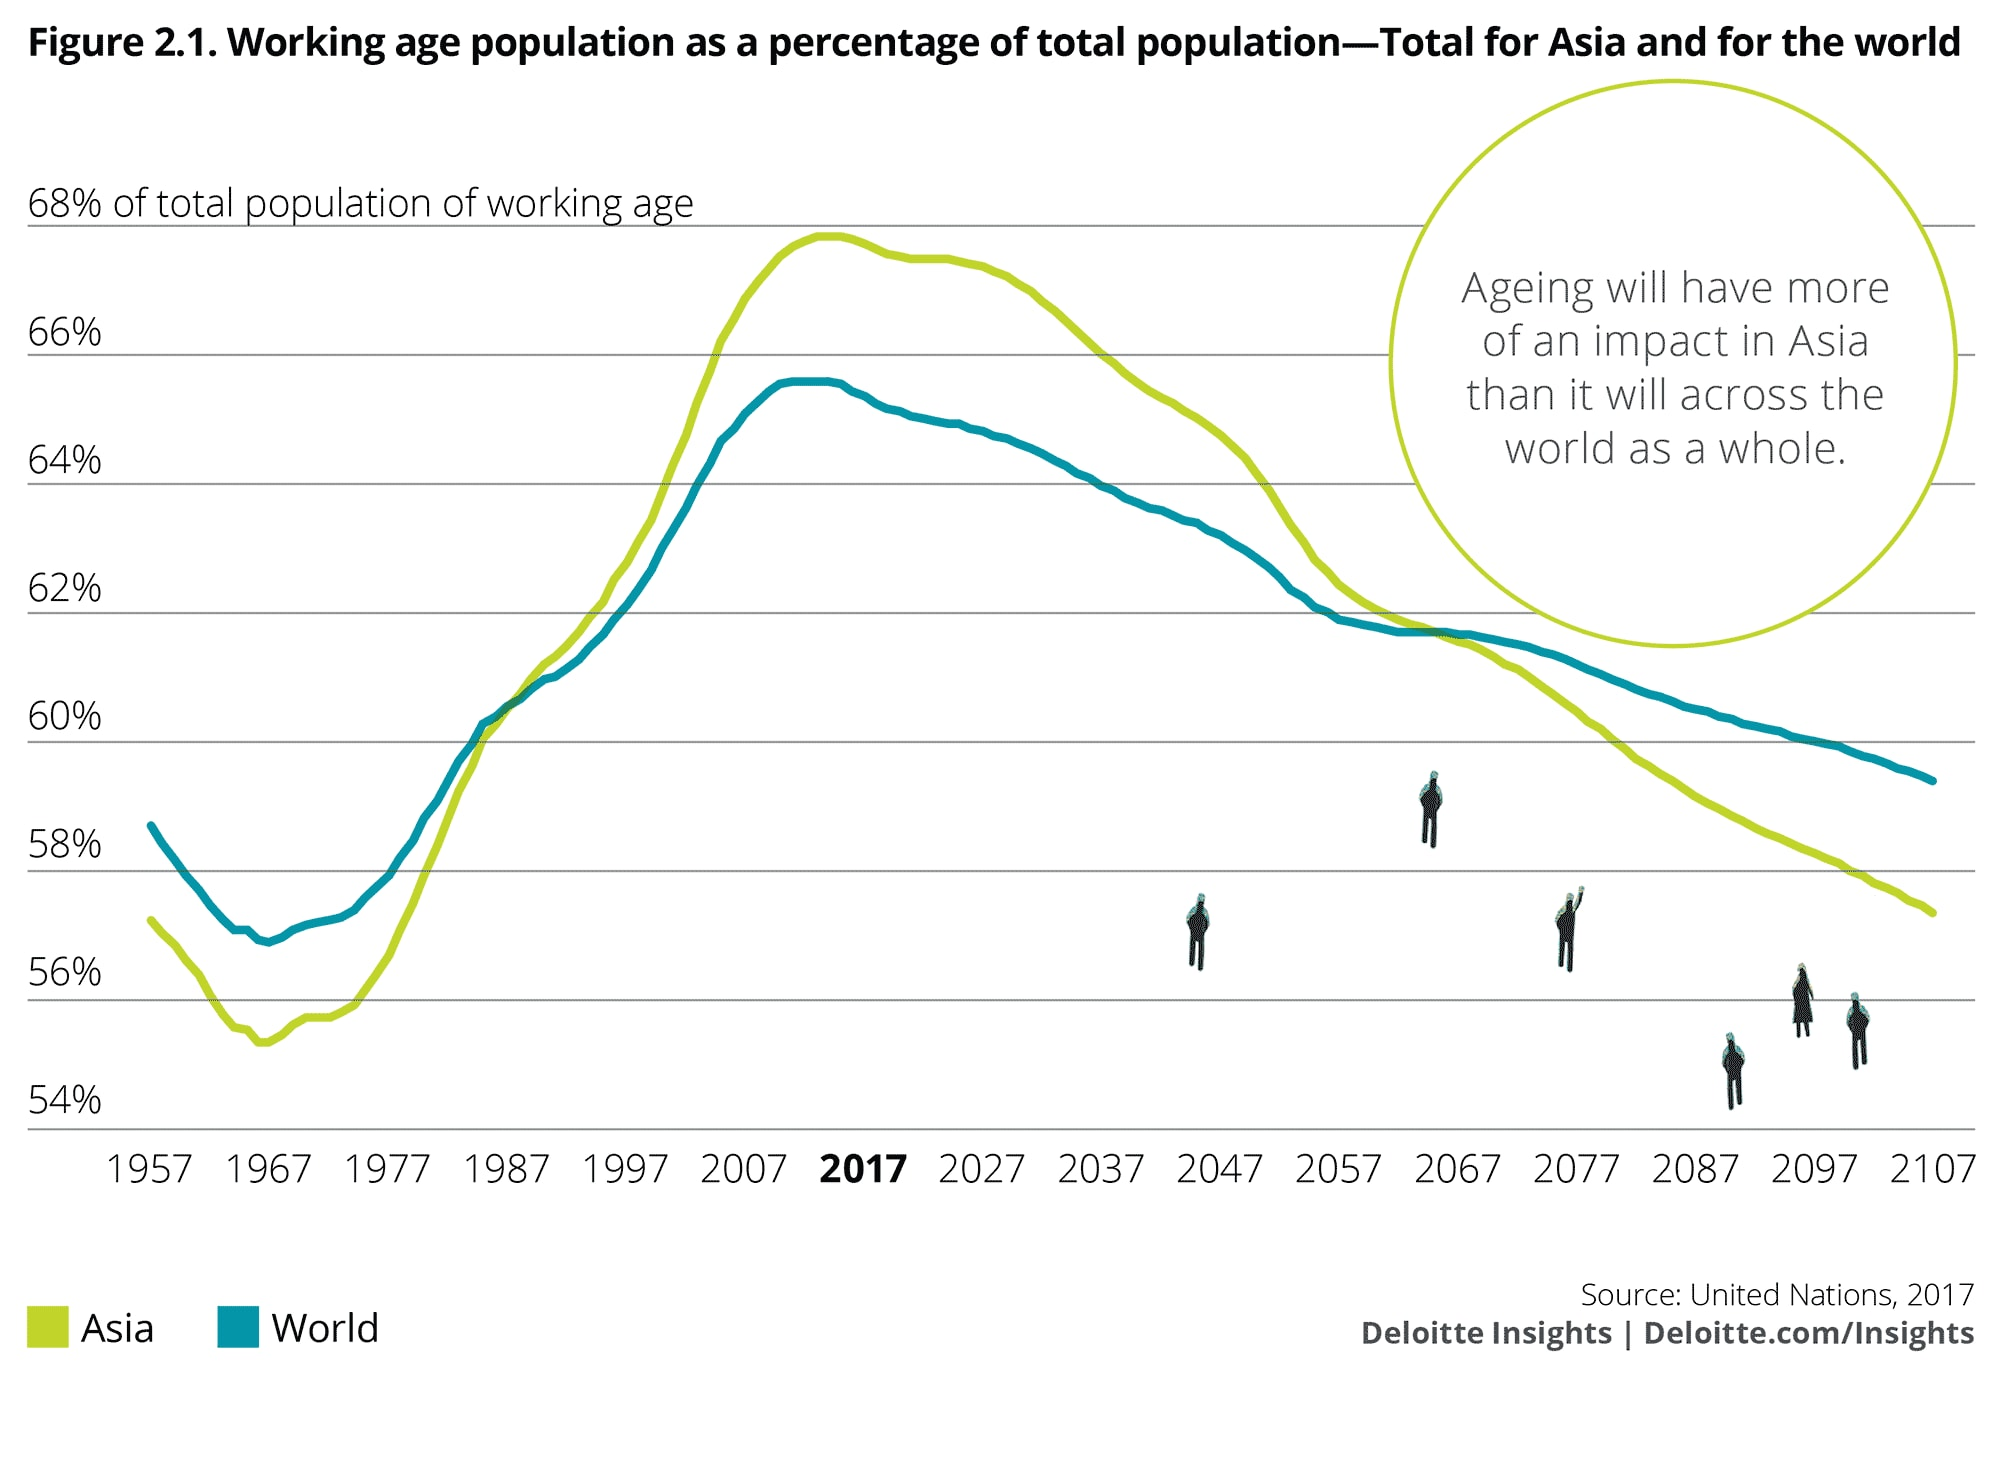 Working age population as a percentage of total population: Total for Asia and for the world